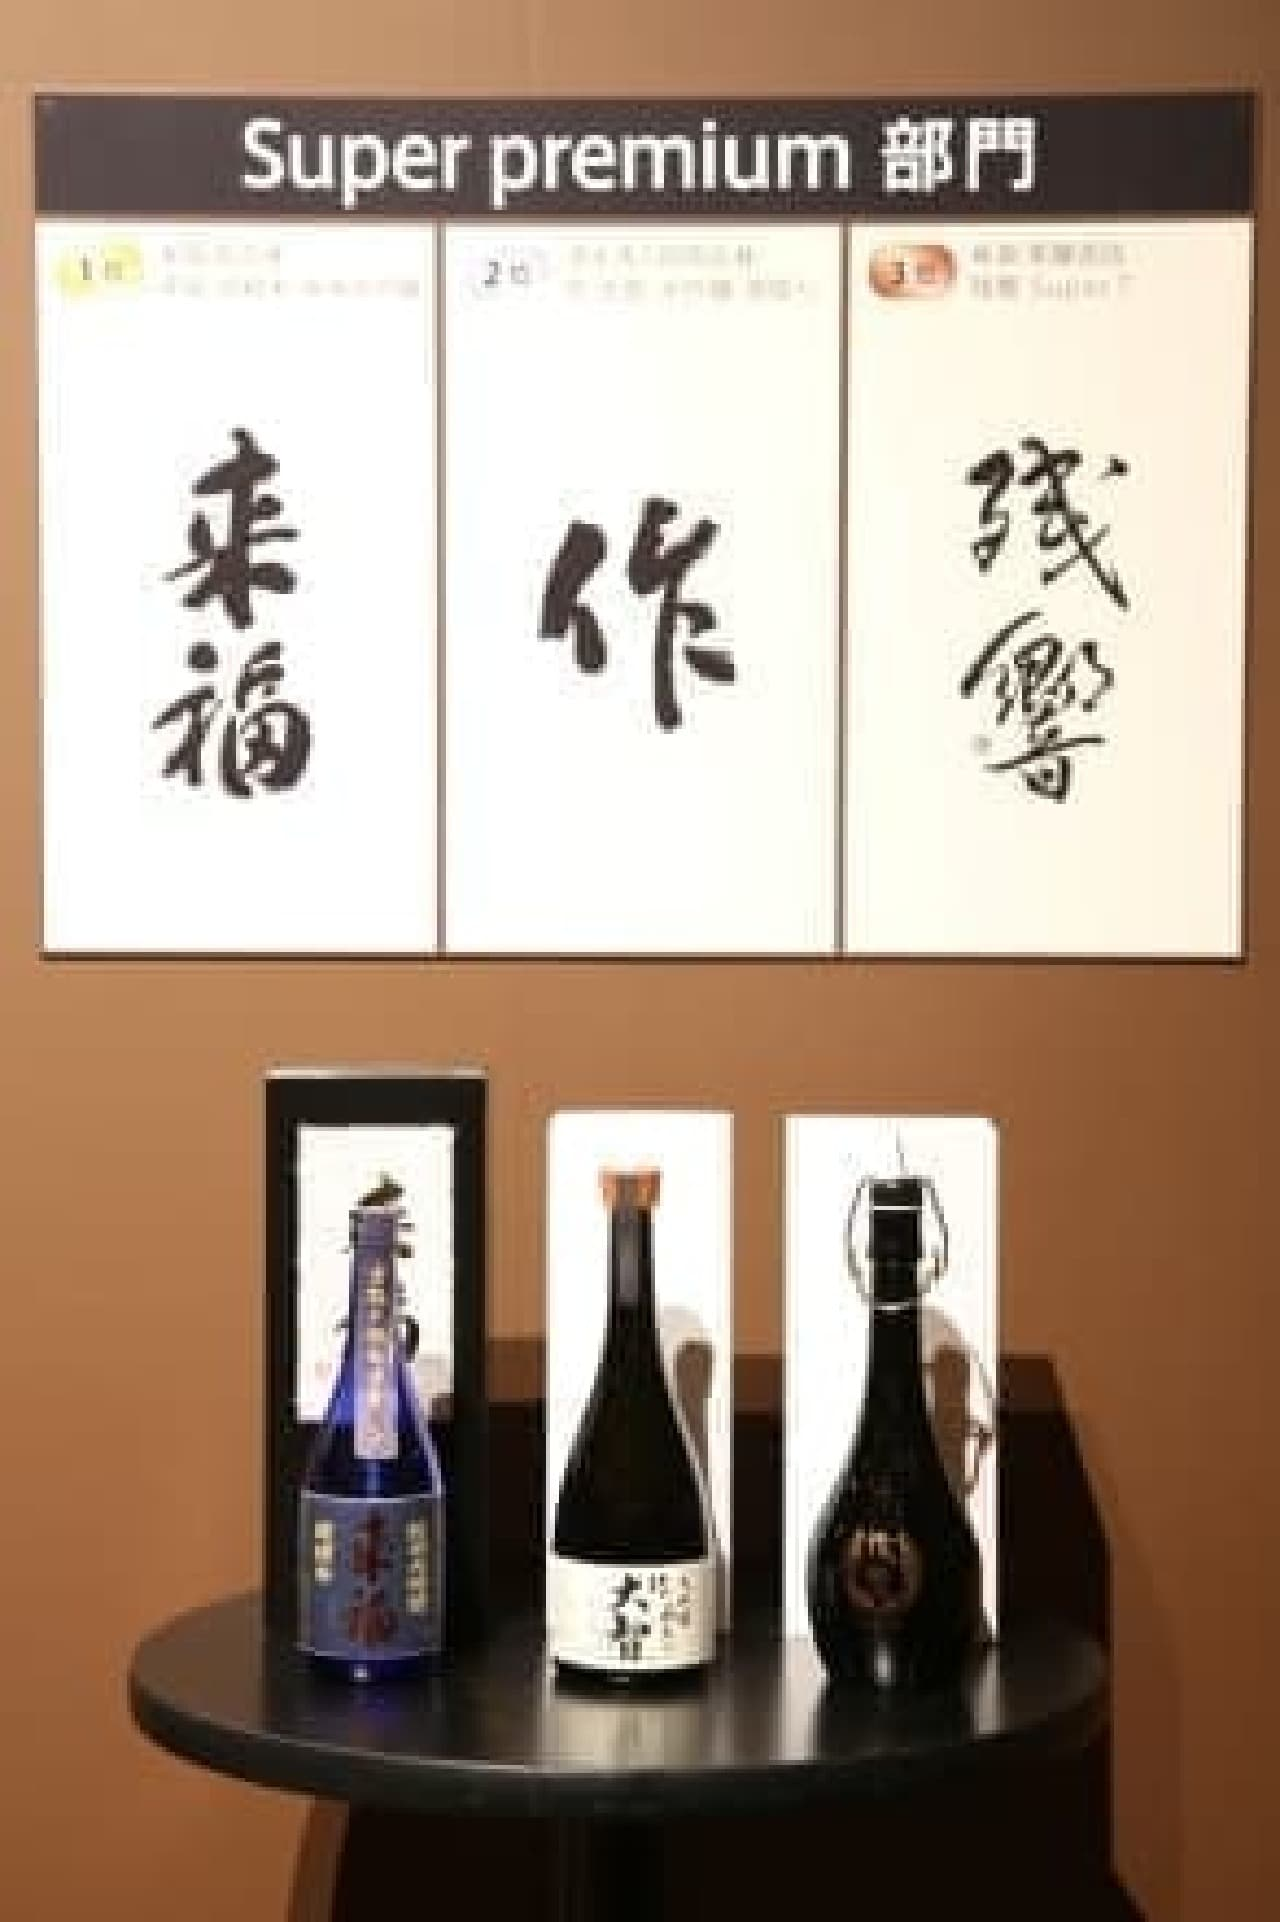 SAKE COMPETITION 2016 Super Premium部門受賞銘柄